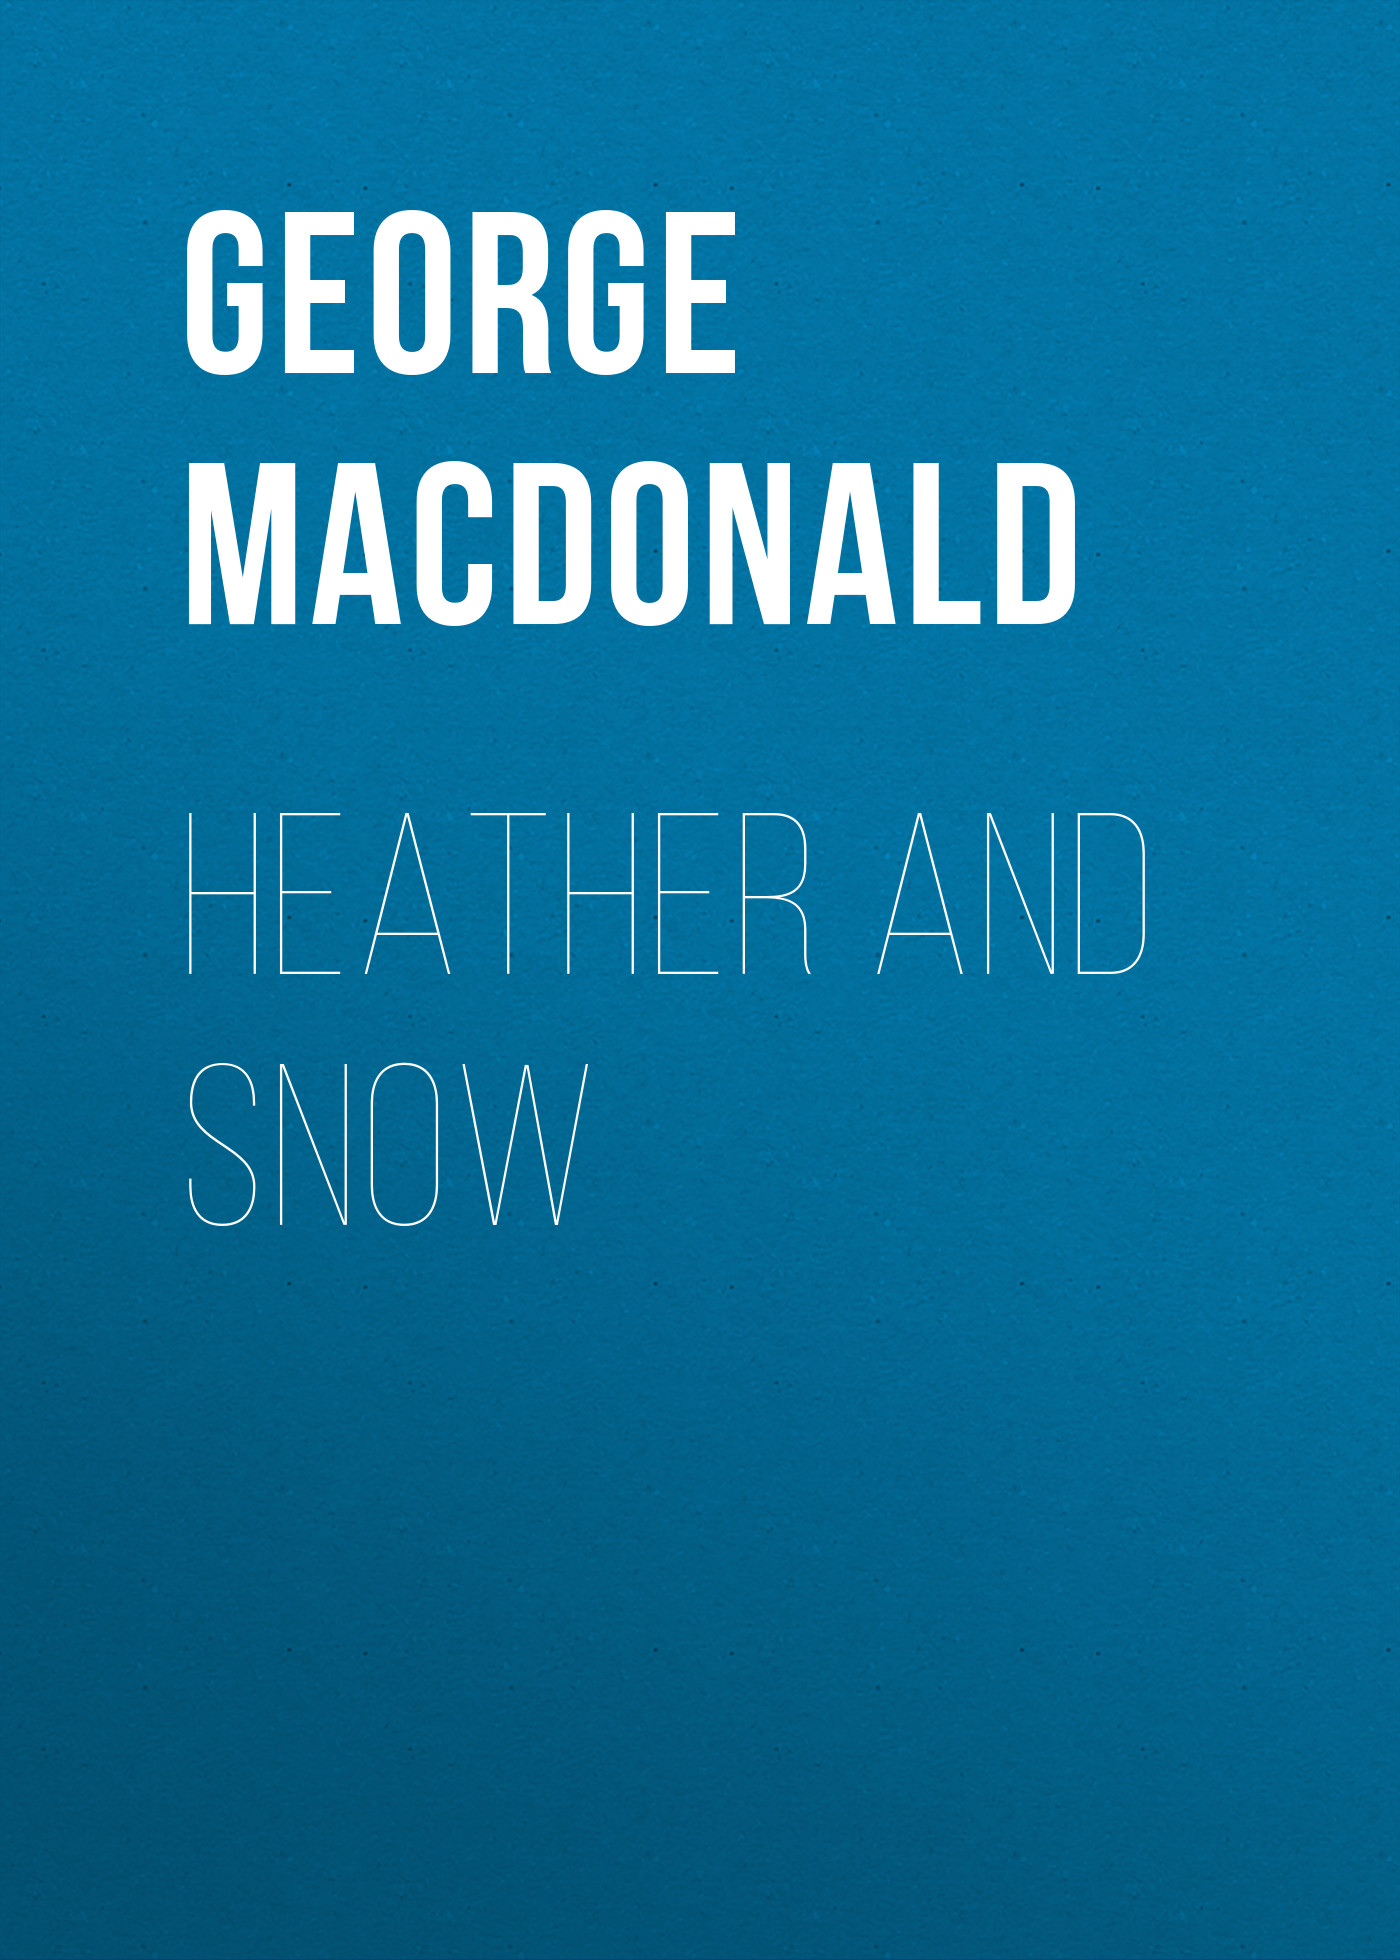 George MacDonald Heather and Snow george macdonald weighed and wanting